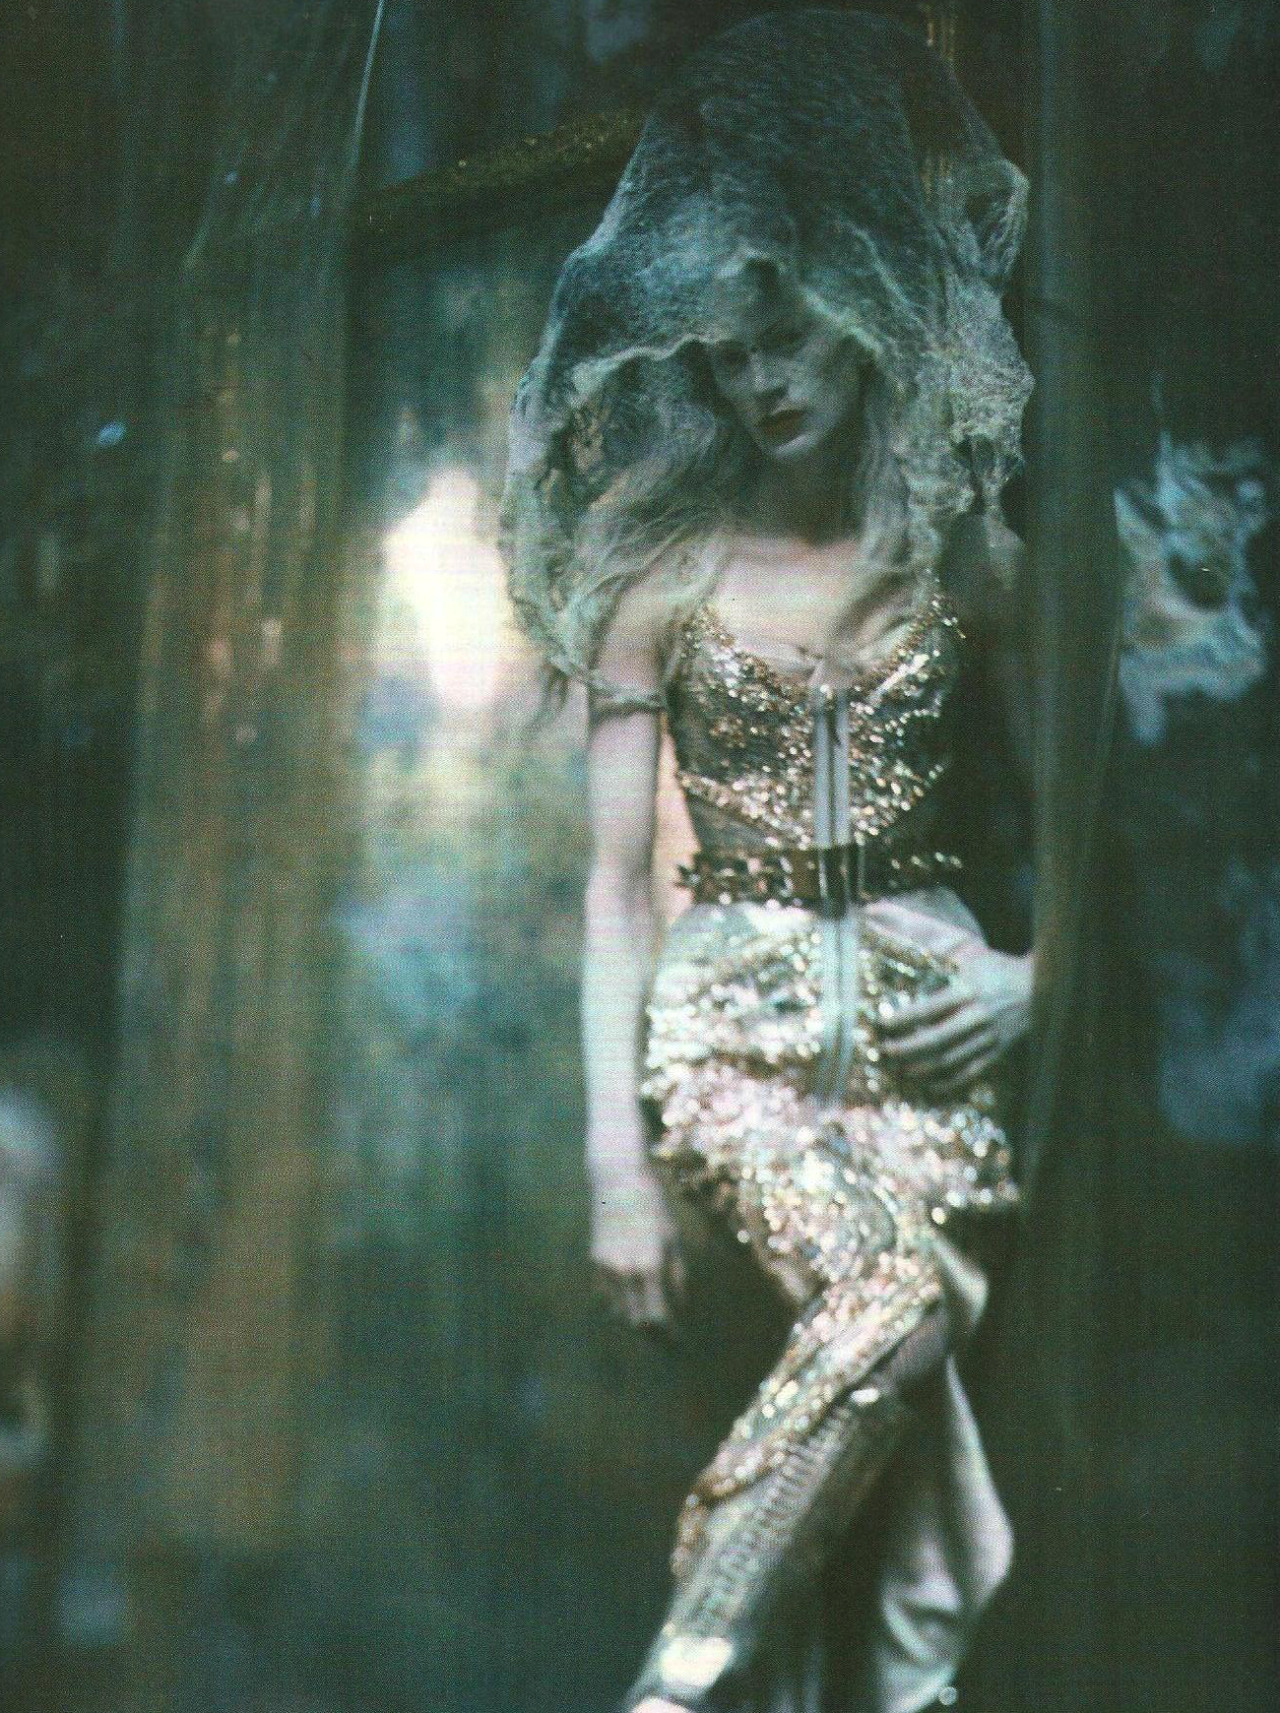 candentia:  Kristen McMenamy in 'The Grand Couture' Photographer: Paolo Roversi Dress: Givenchy Haute Couture F/W 2010/11 Vogue Italia September 2010